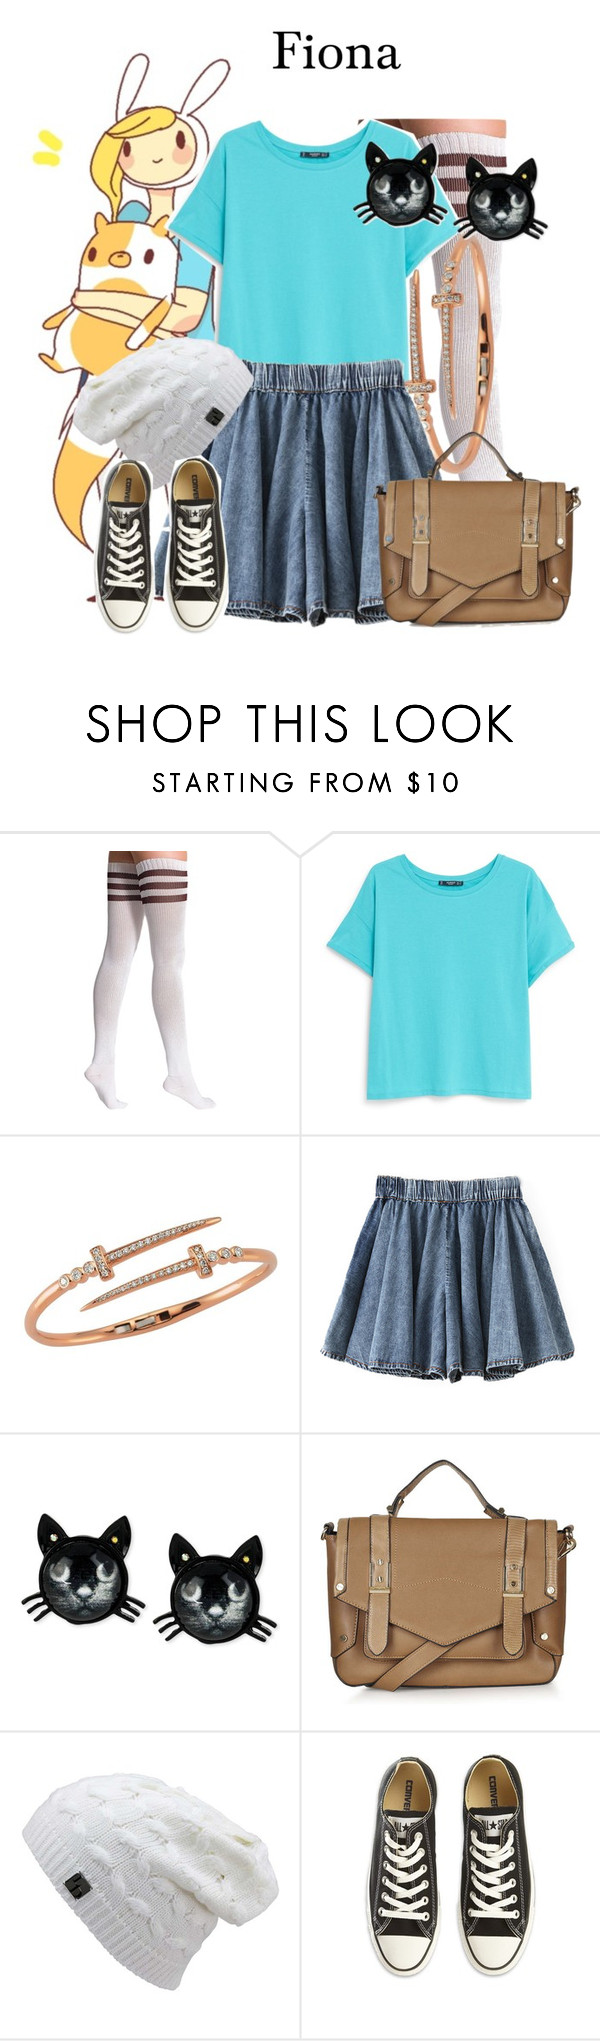 """Fiona/AdventureTime/1-11-16"" by megan-vanwinkle ❤ liked on Polyvore featuring American Apparel, MANGO, Bee Goddess, Betsey Johnson, Topshop and Converse"